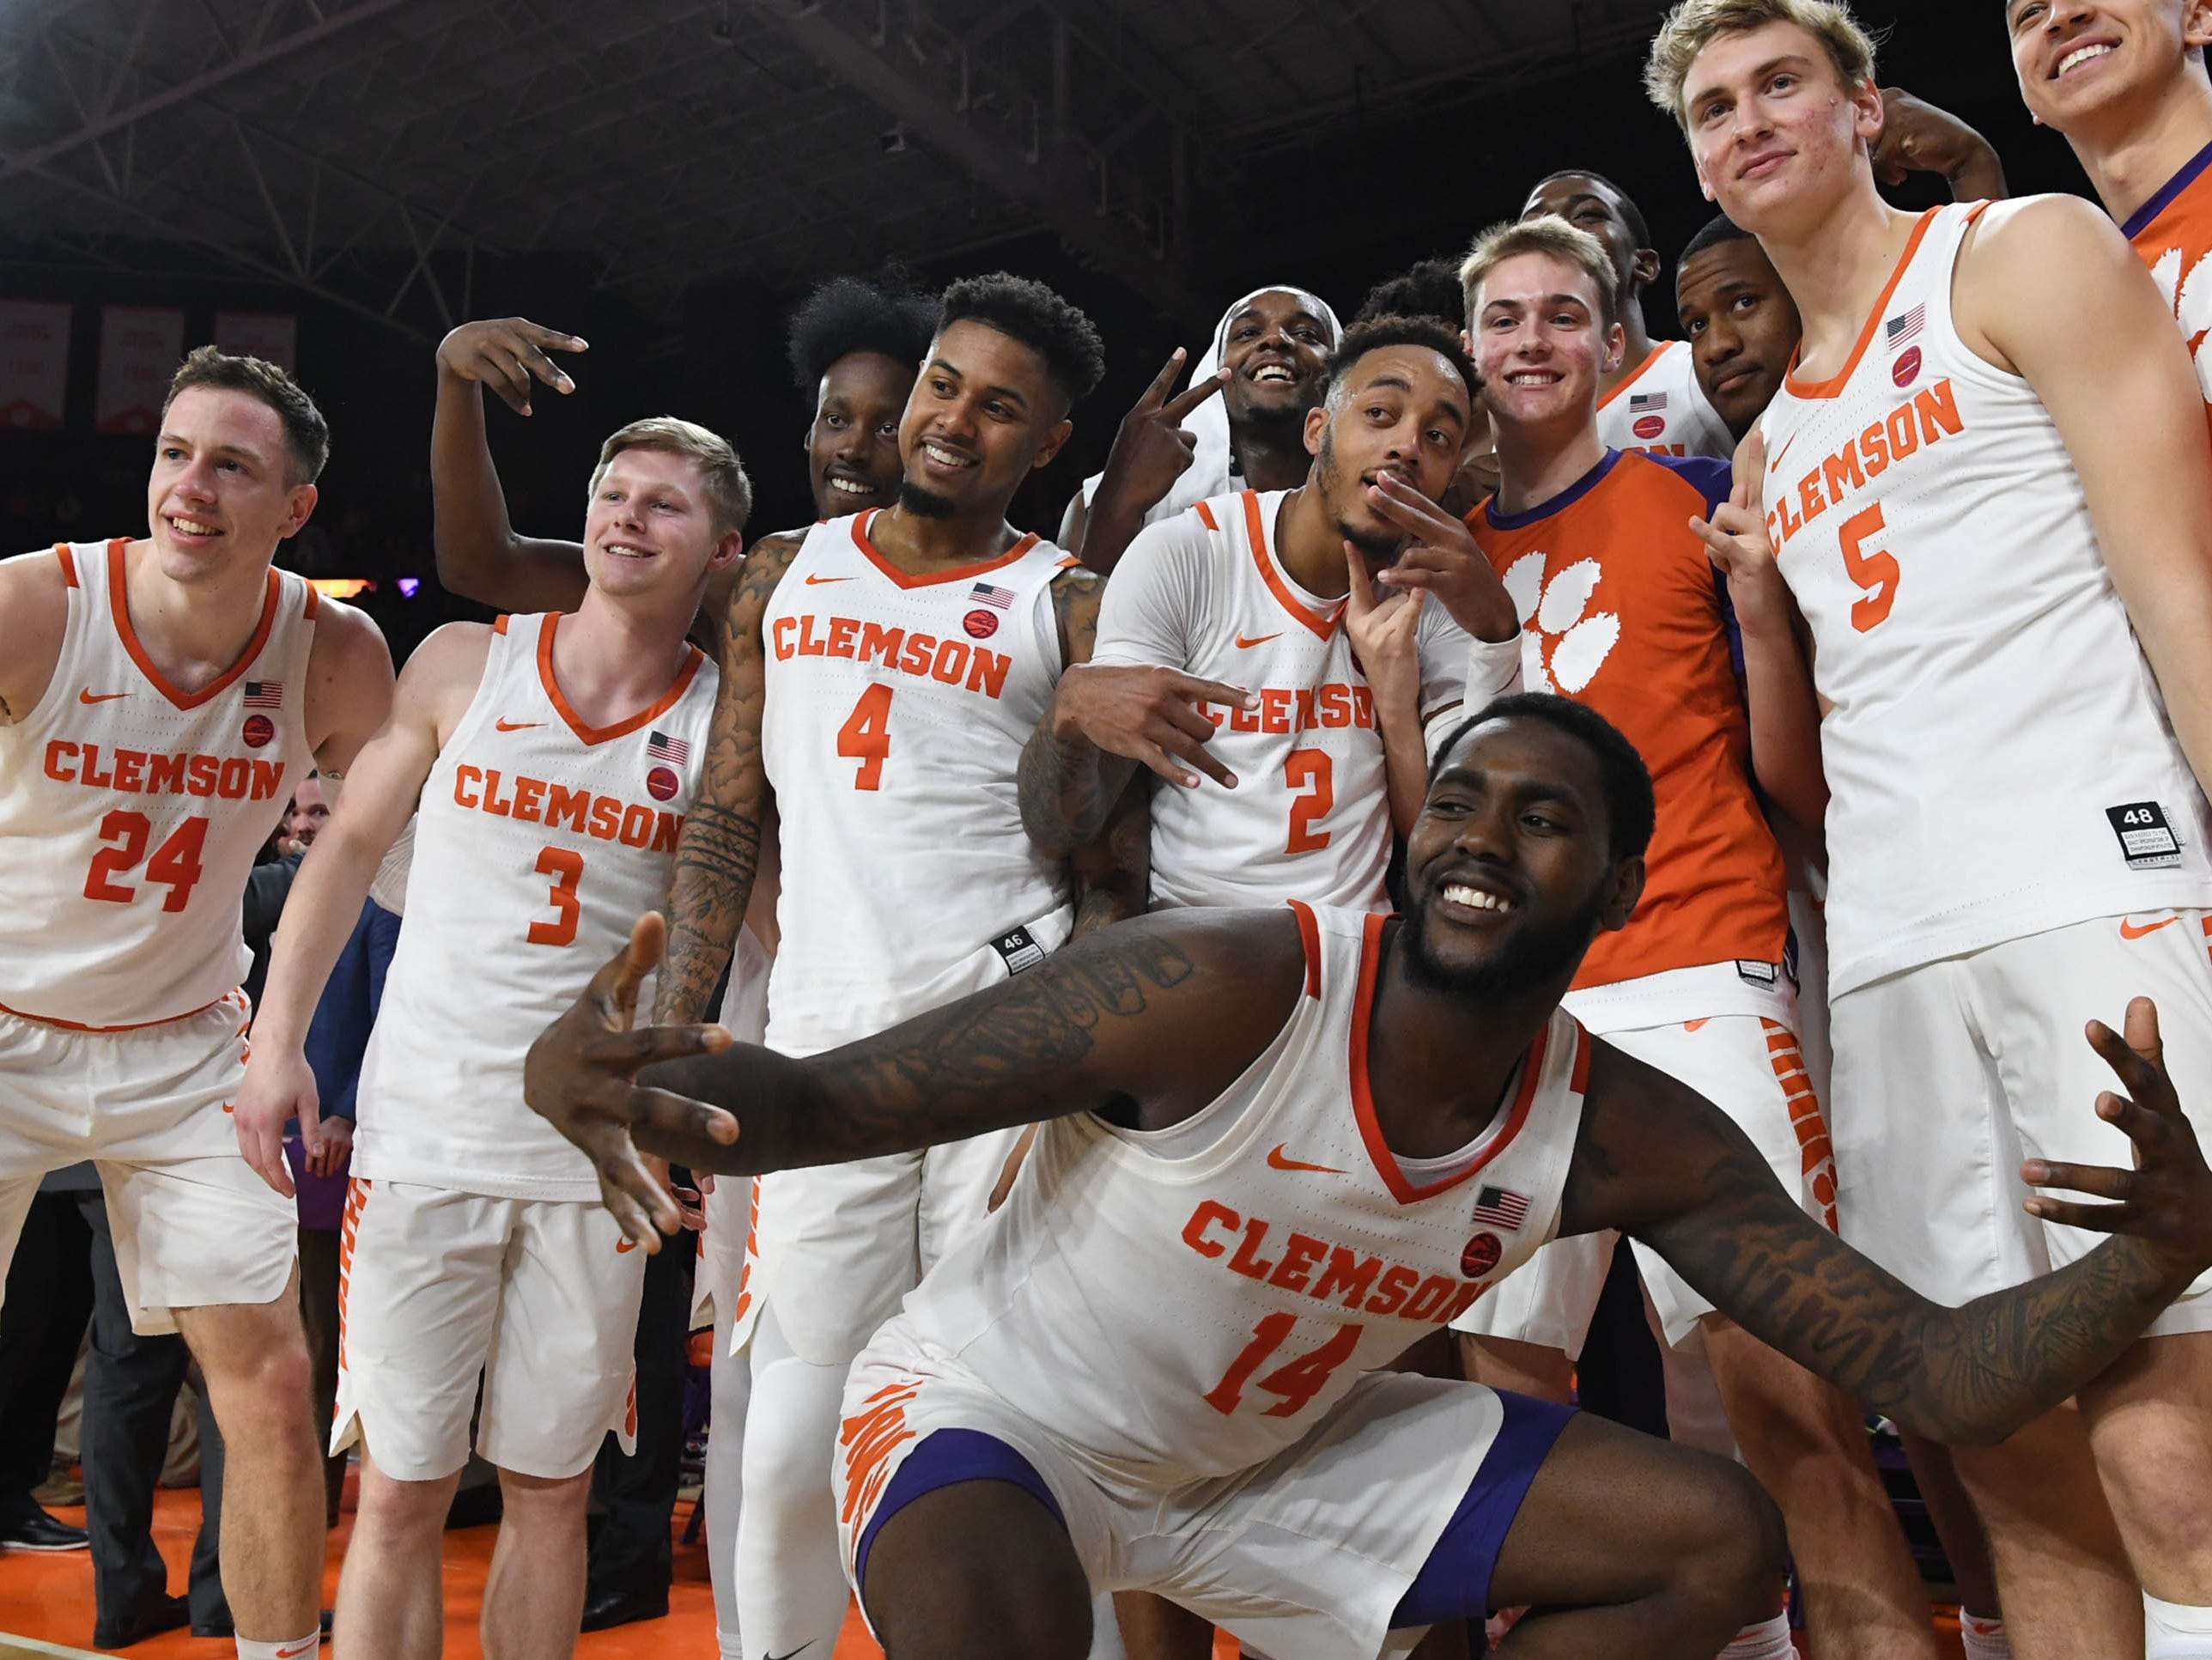 Clemson players celebrate after a 67-55 win over Syracuse in Littlejohn Coliseum in Clemson Saturday, March 9, 2019.